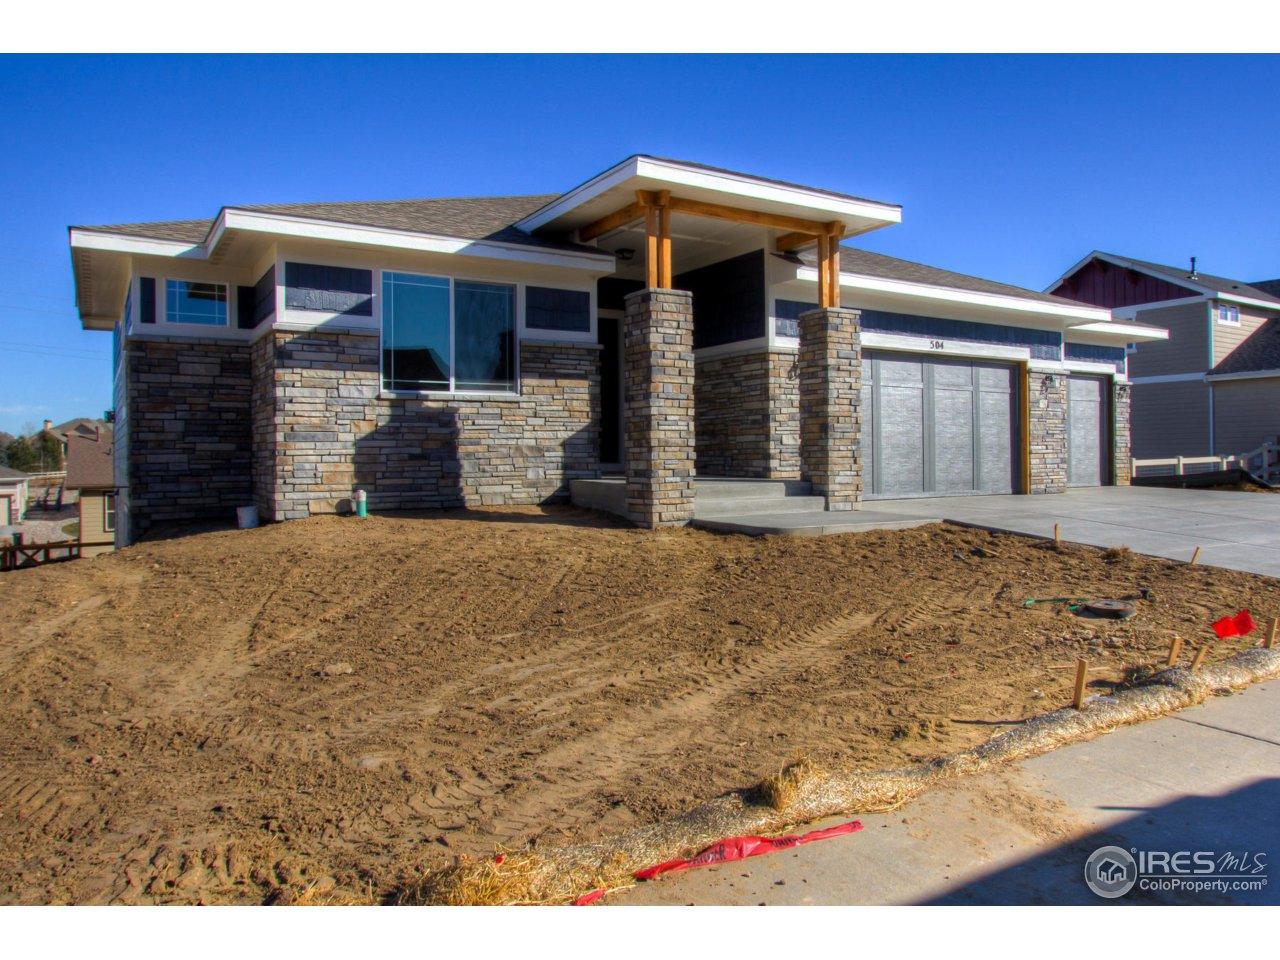 504 Sage Ave, Greeley, CO 80634